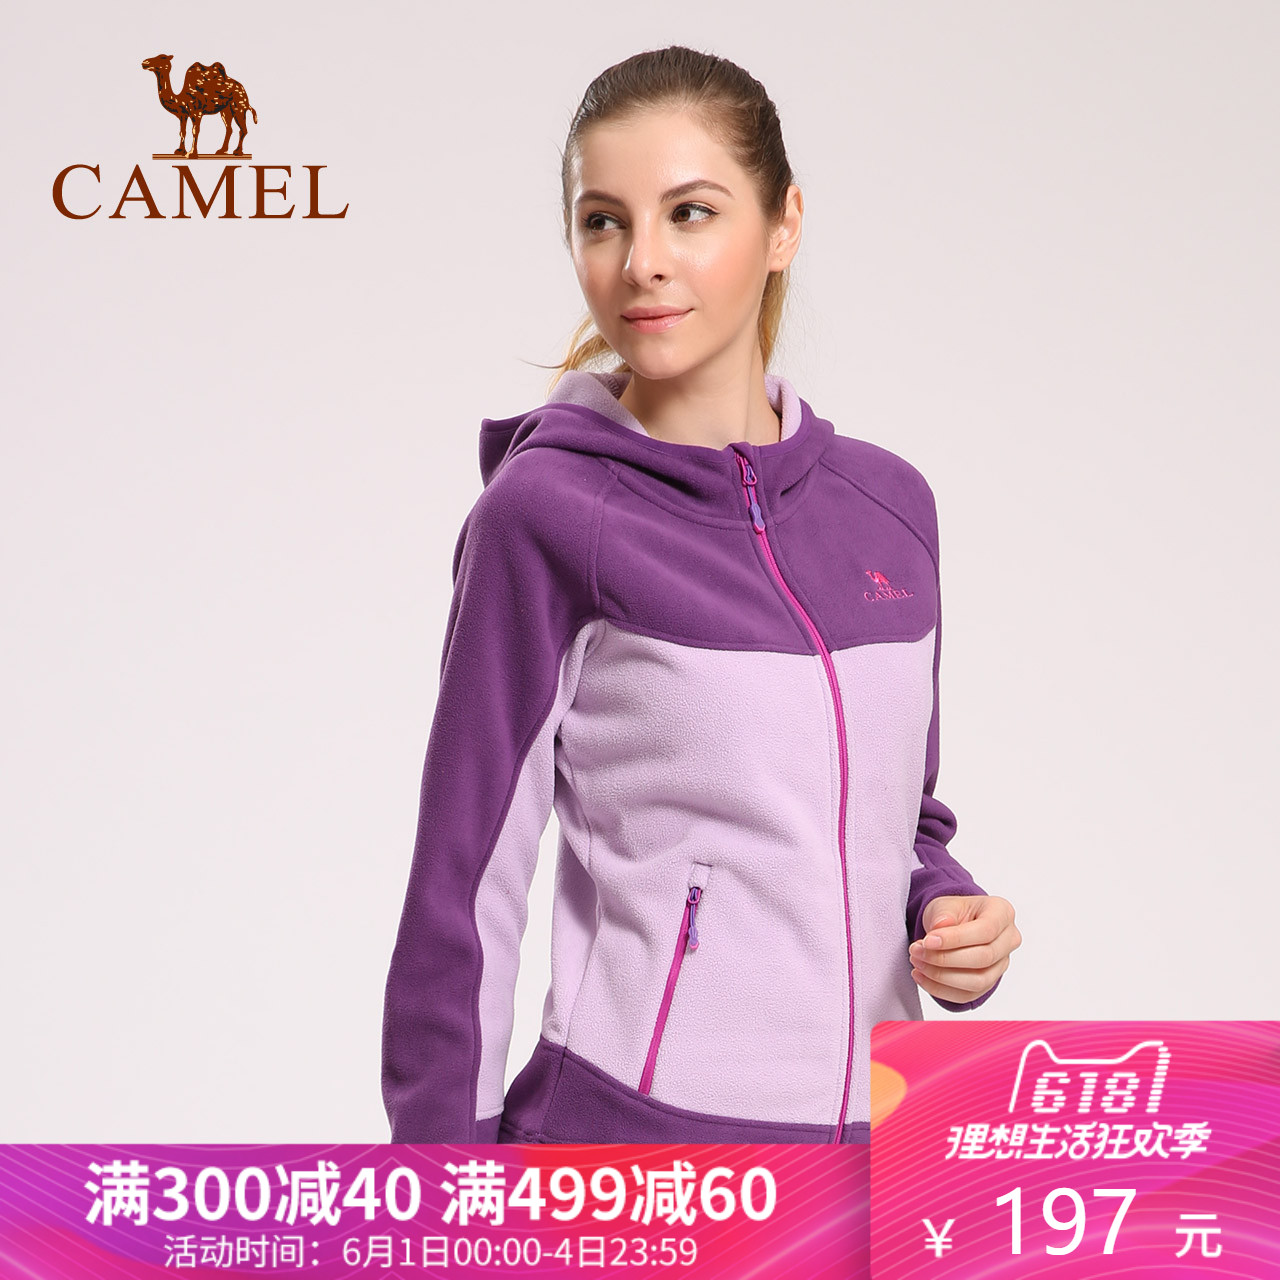 CAMEL camel outdoor warm catching fleece women's windproof warm anti-static fashion long-sleeved cardigan catching fleece